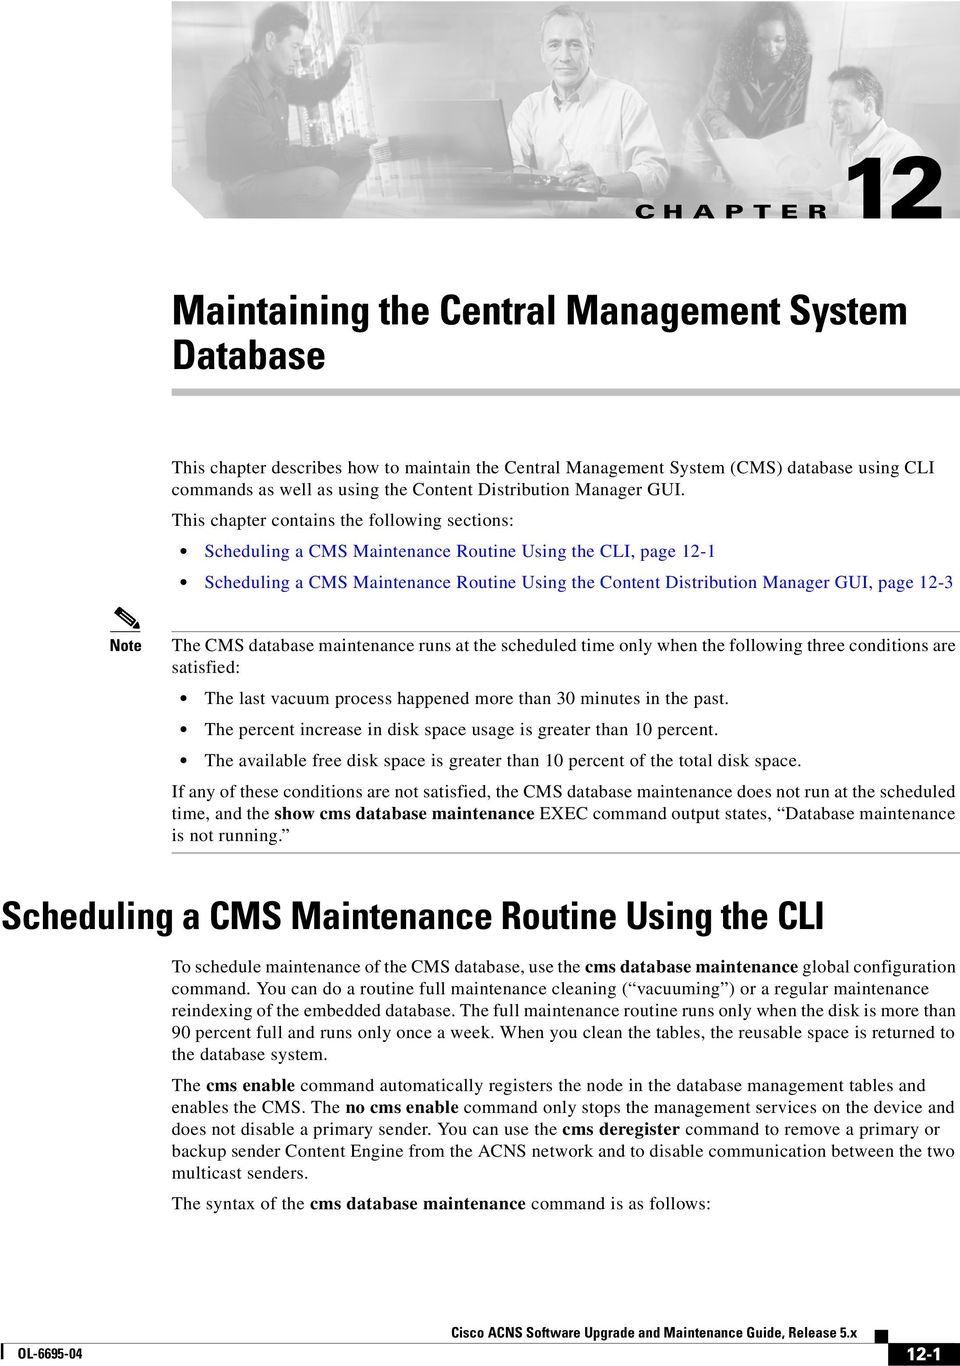 This chapter contains the following sections: Scheduling a CMS Maintenance Routine Using the CLI, page 12-1, page 12-3 Note The CMS database maintenance runs at the scheduled time only when the